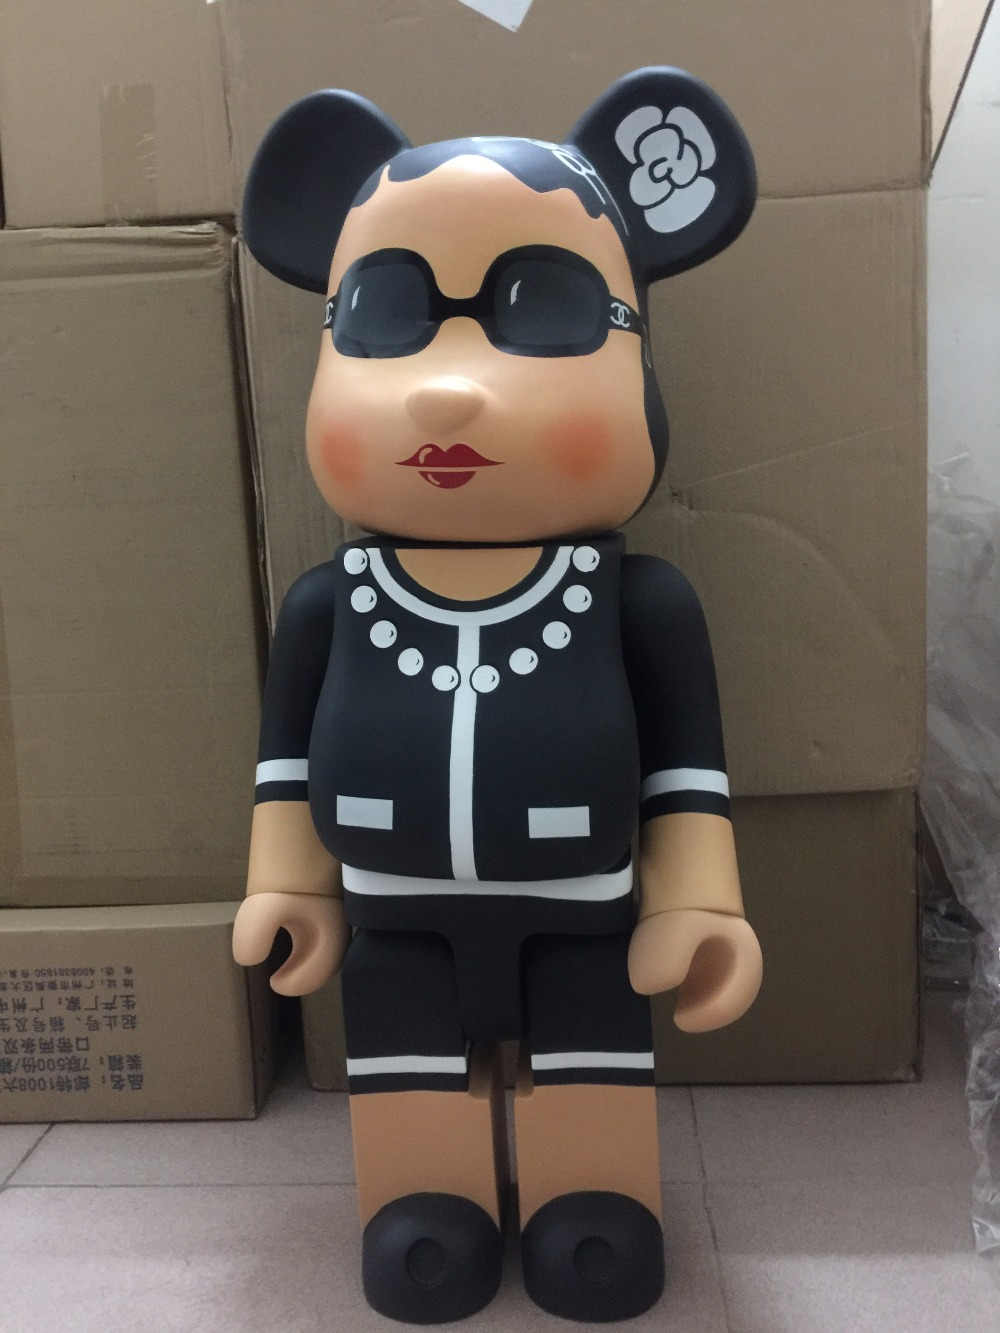 70cm Bearbrick 1000% Luxury Lady CH Be@rbrick PVC Action Figure Collectible Model Toy Birthday gift ornaments new hot christmas gift 21inch 52cm bearbrick be rbrick fashion toy pvc action figure collectible model toy decoration